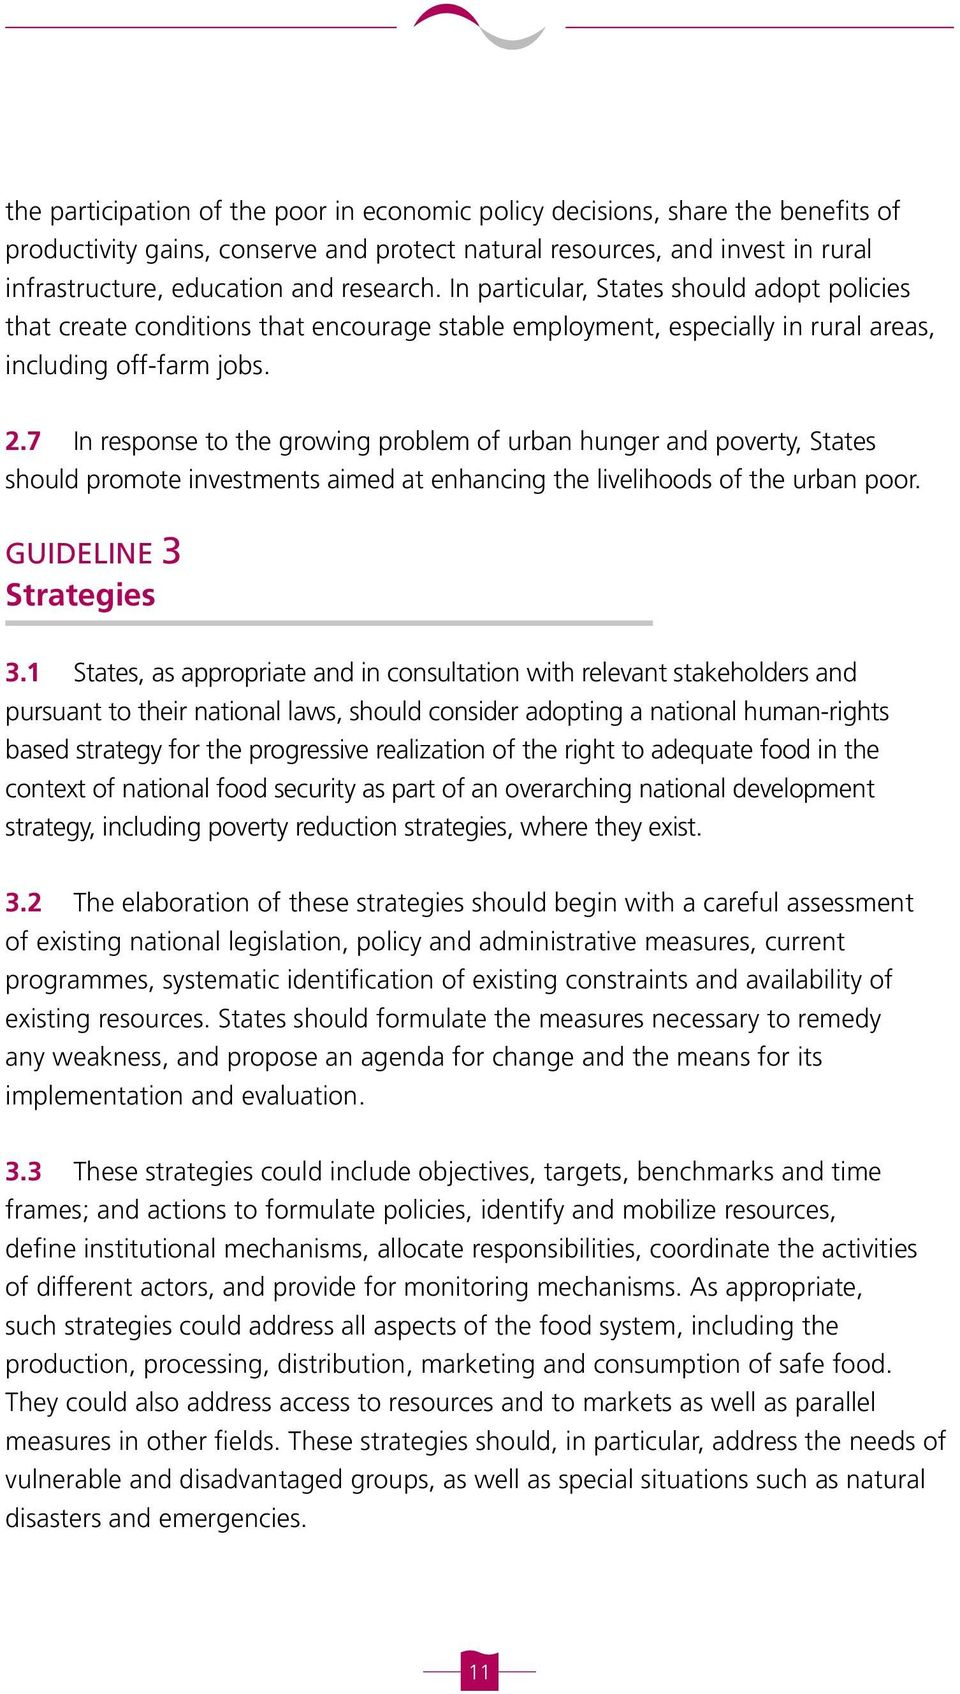 7 In response to the growing problem of urban hunger and poverty, States should promote investments aimed at enhancing the livelihoods of the urban poor. GUIDELINE 3 Strategies 3.